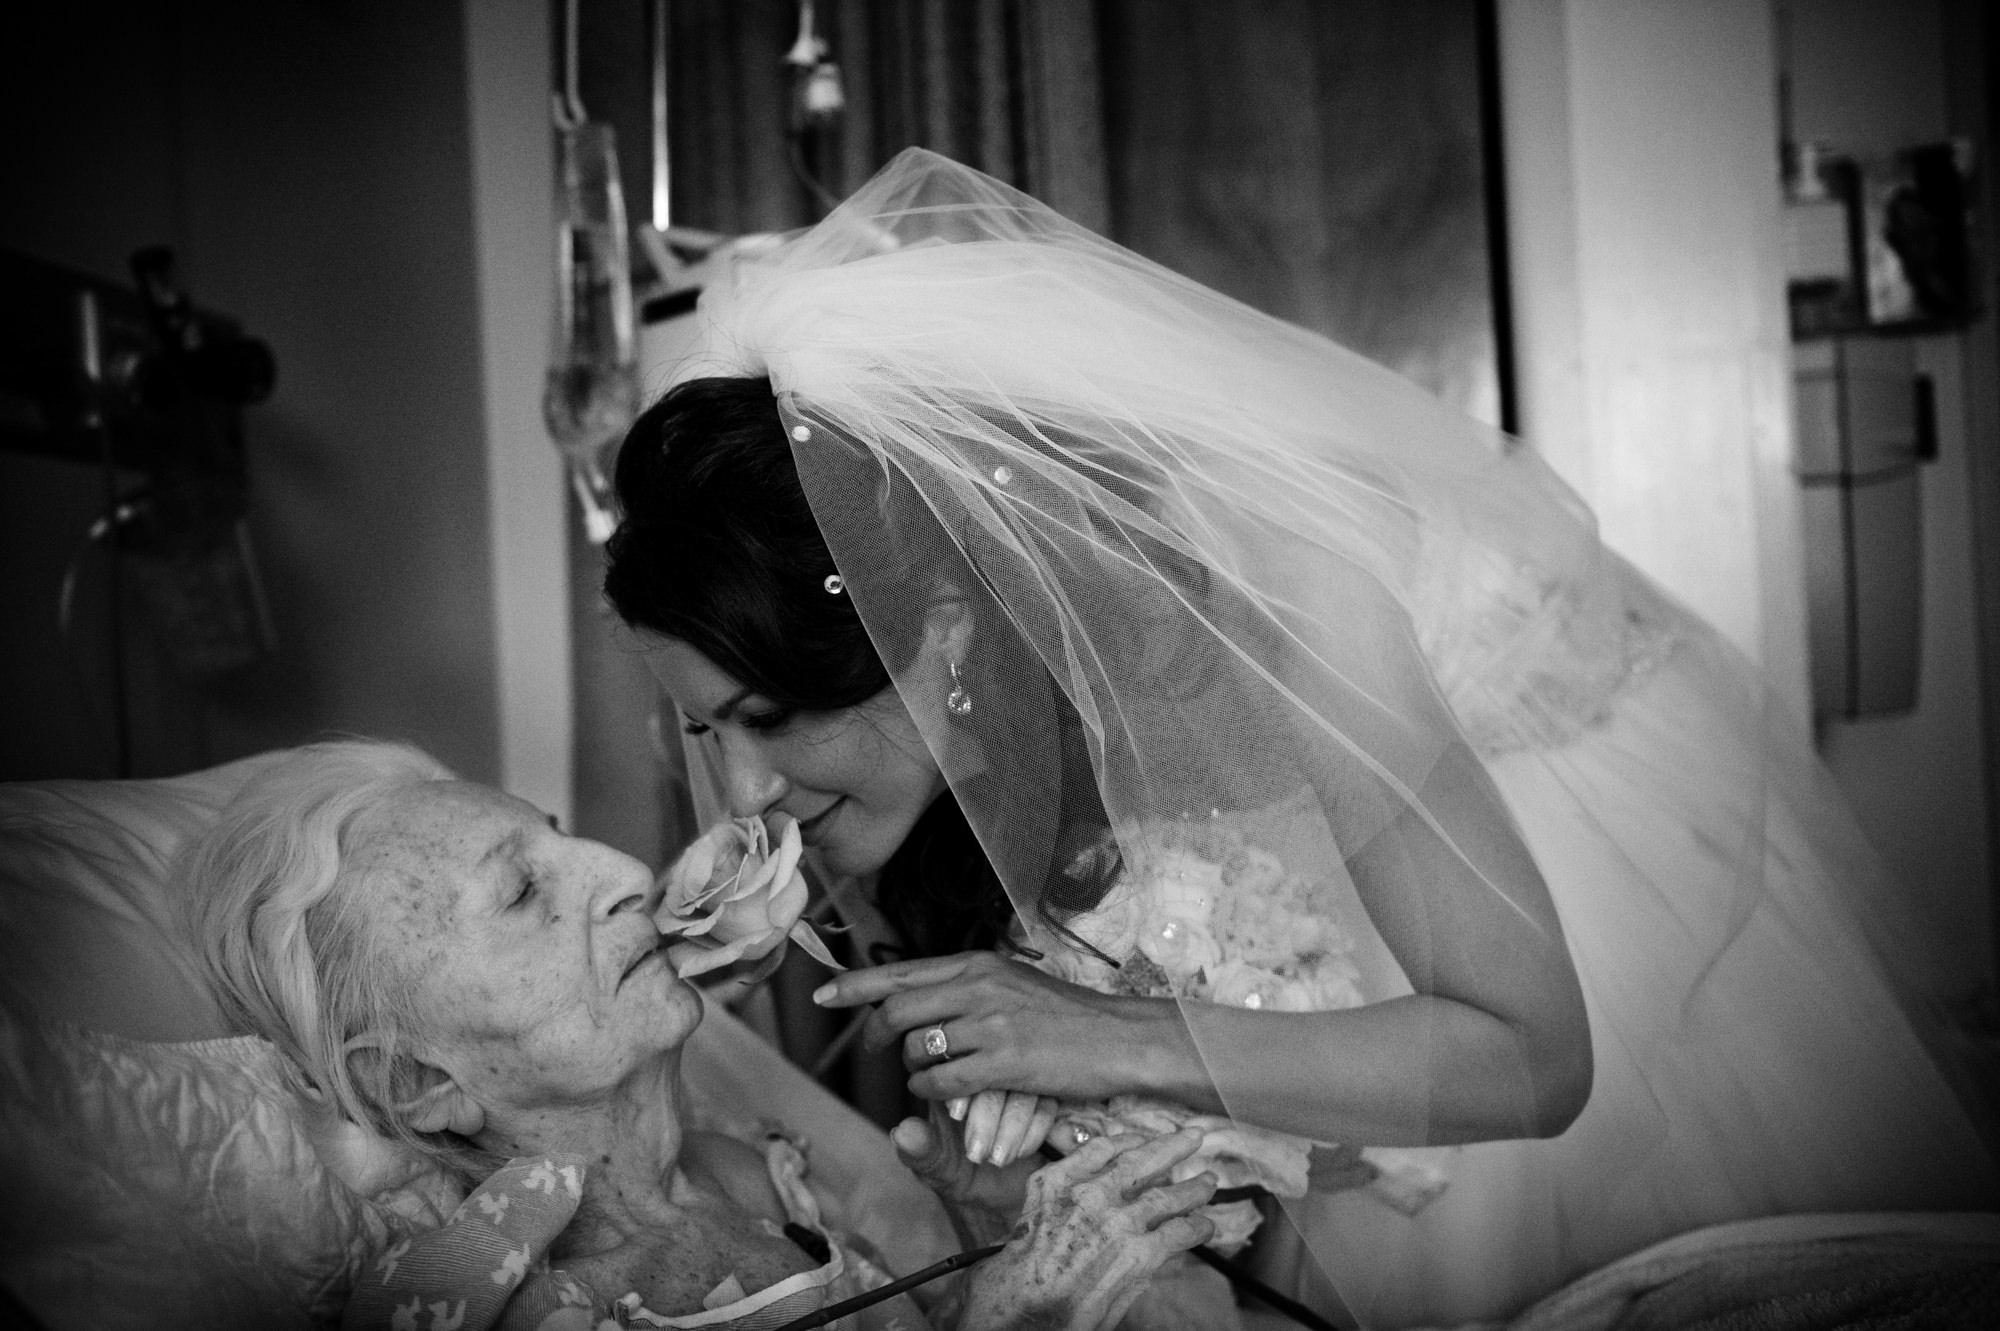 Bride leans down to kiss her ailing grandmother - photo by Cliff Mautner - New York